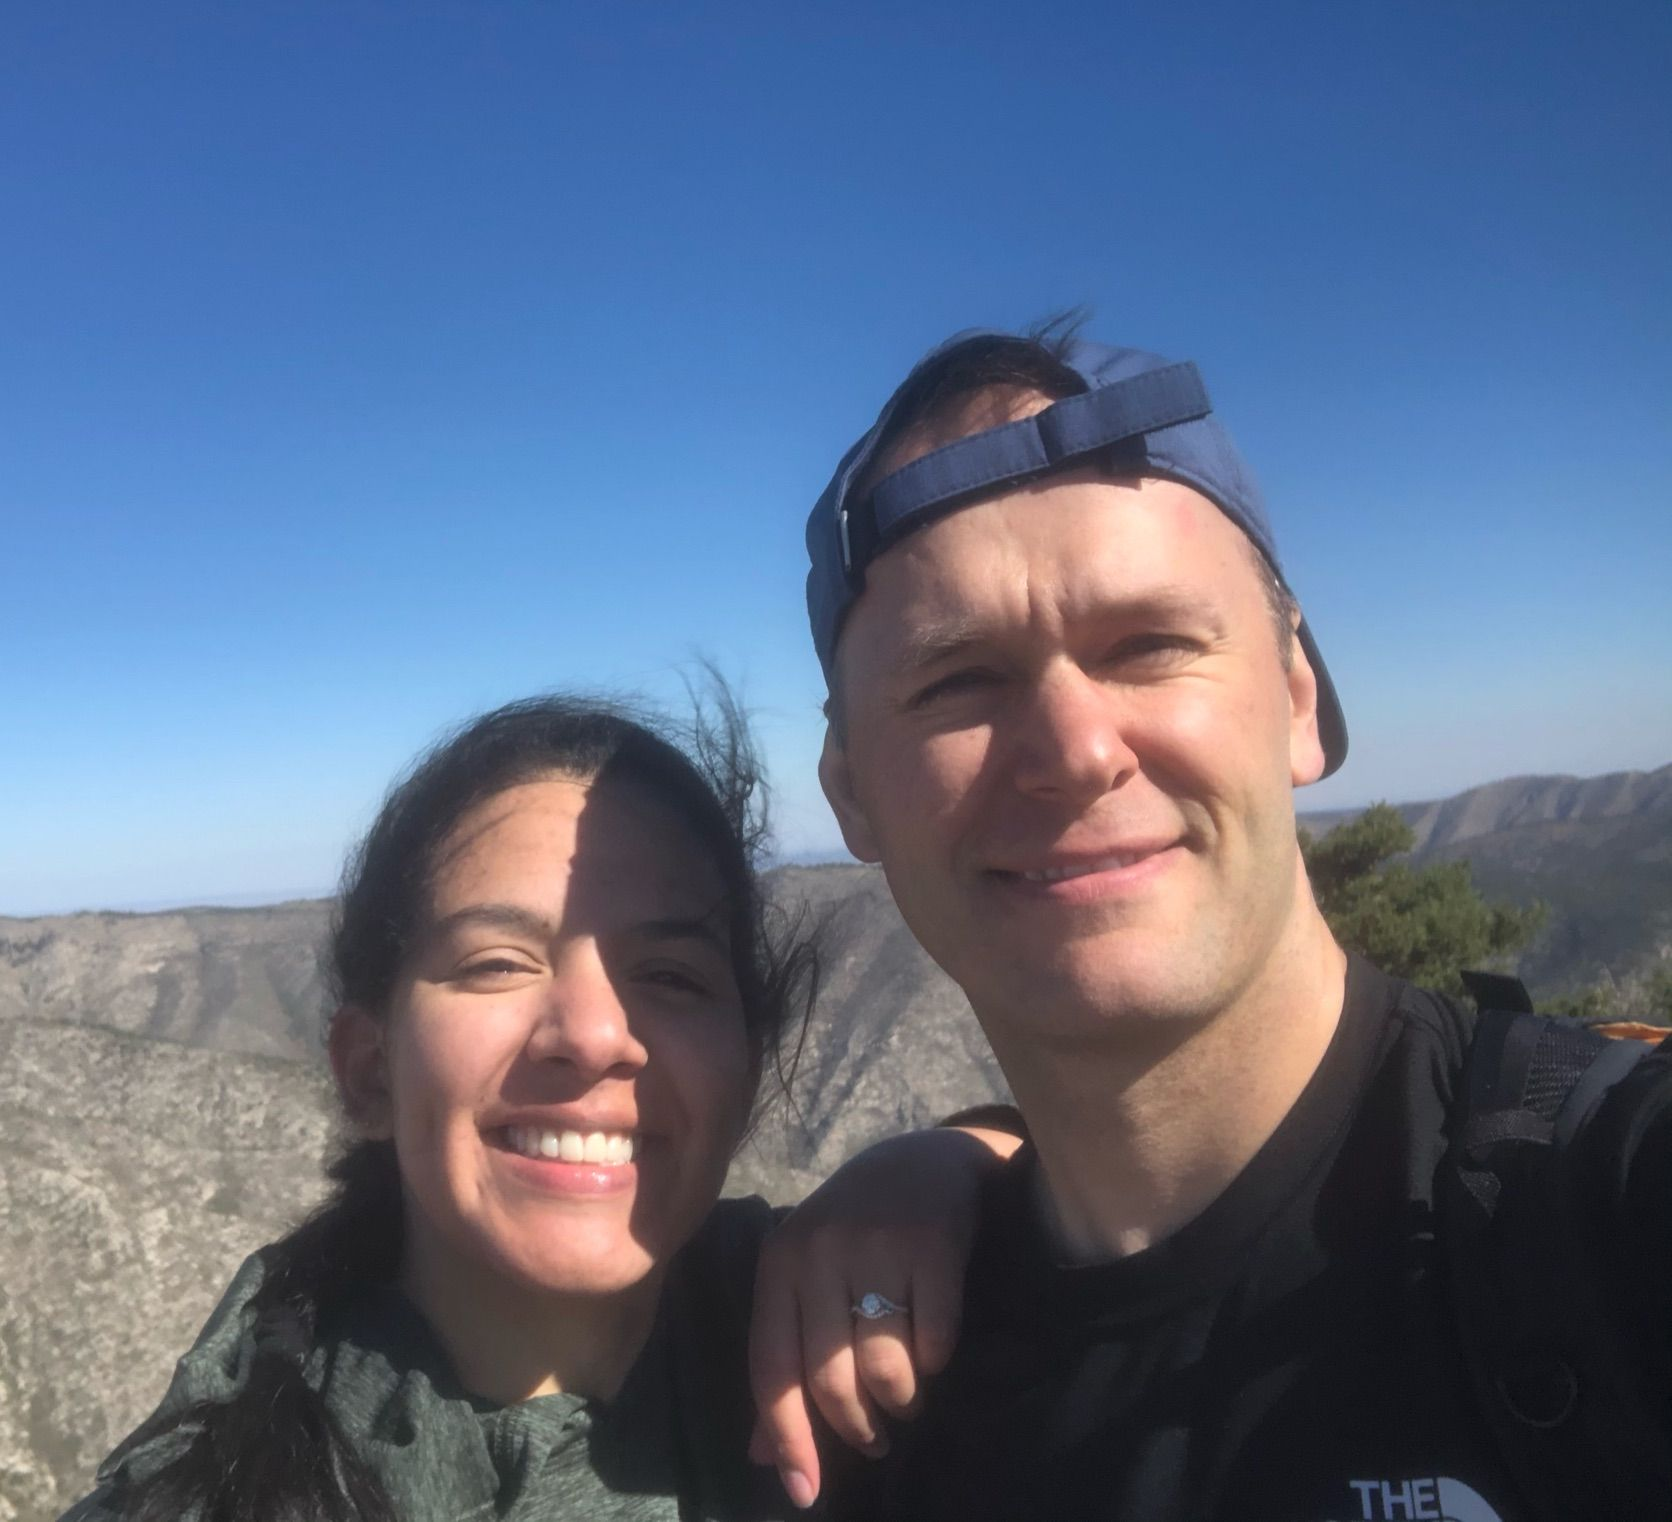 Christian couple out for a hike